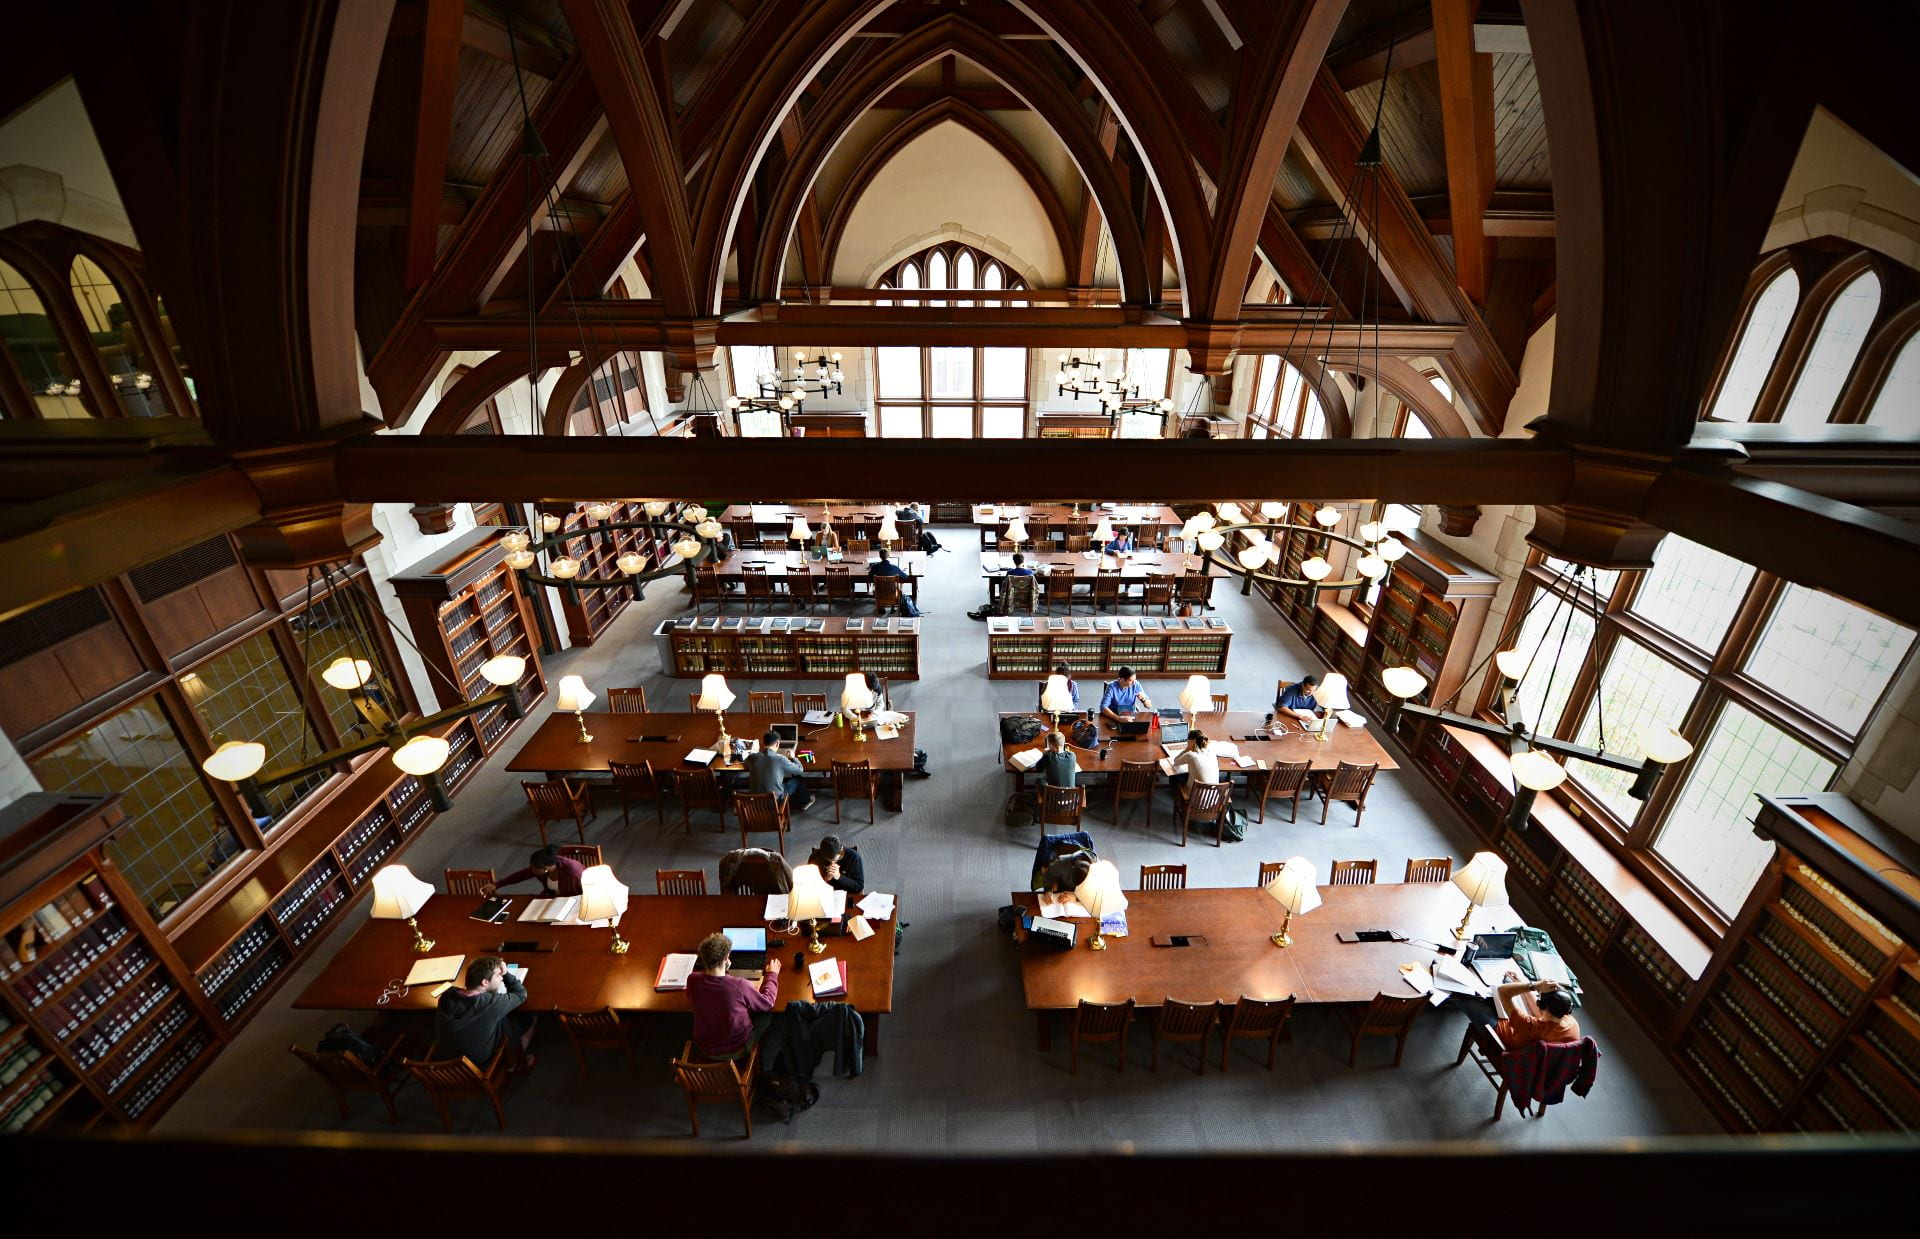 Students study in the Washington University Law Library